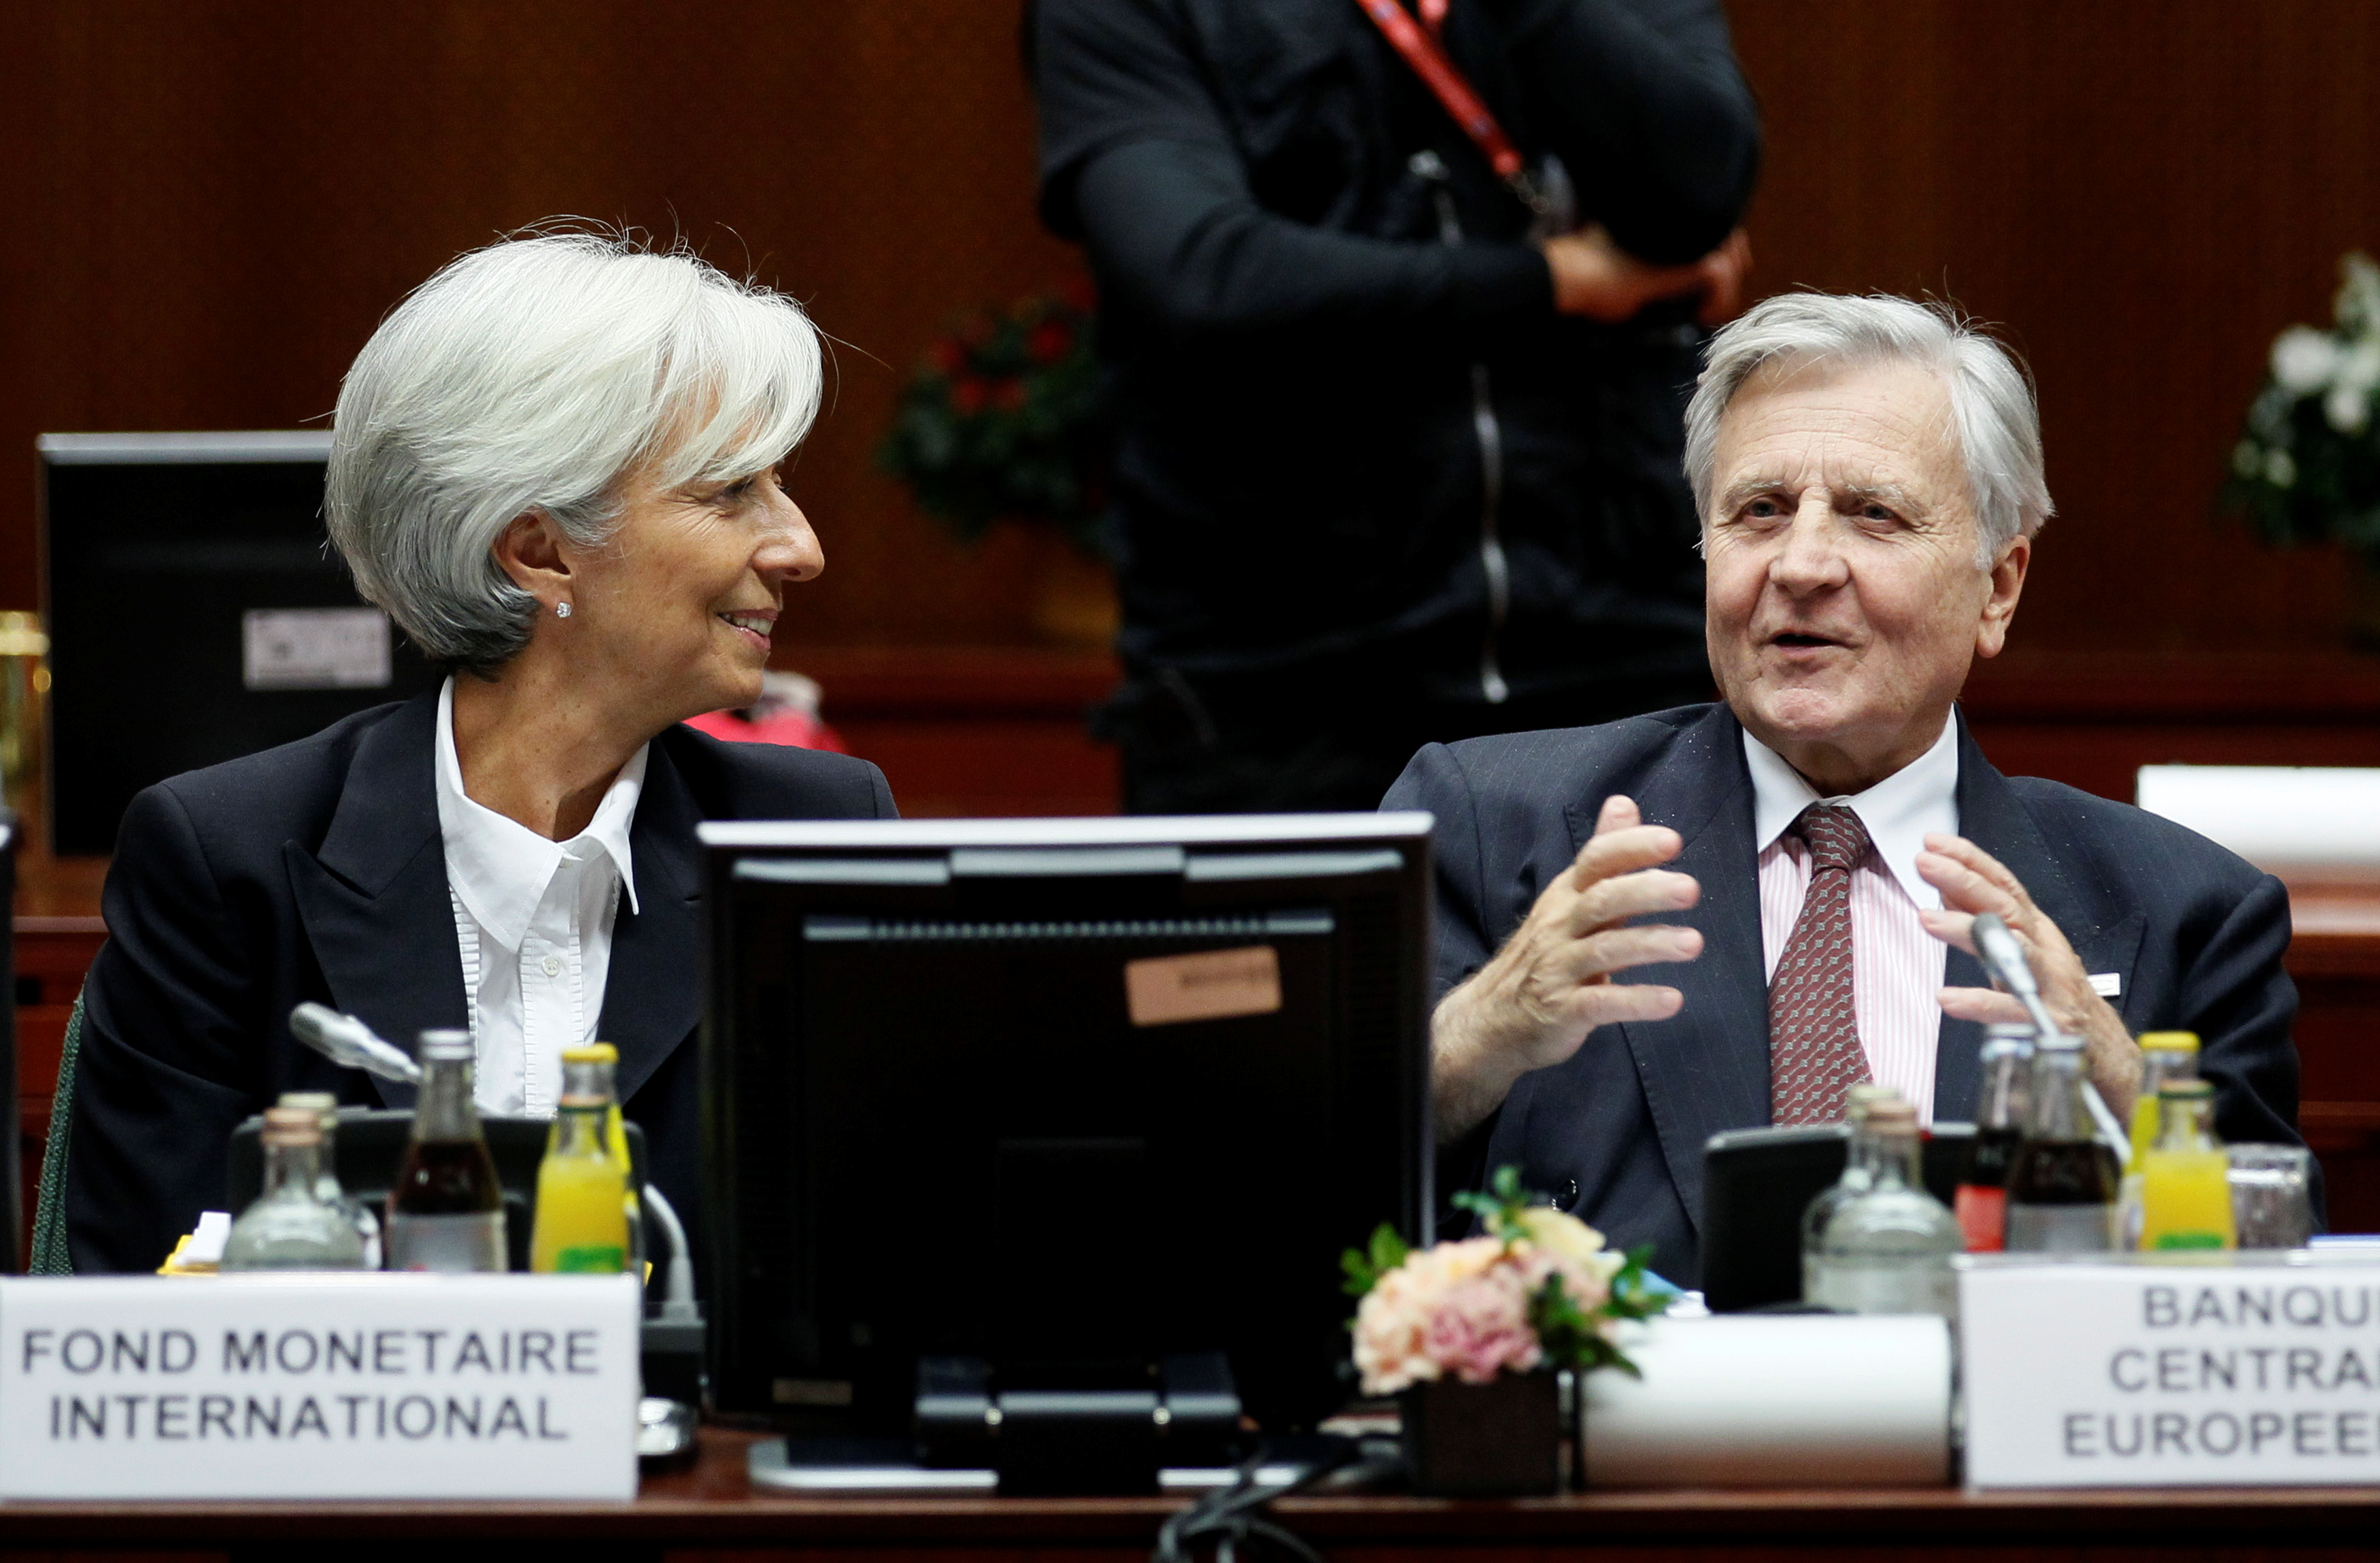 IMF President Christine Lagarde (L) and European Central Bank President Jean-Claude Trichet (R) attend a euro zone summit in Brussels October 23, 2011.      REUTERS/Yves Herman